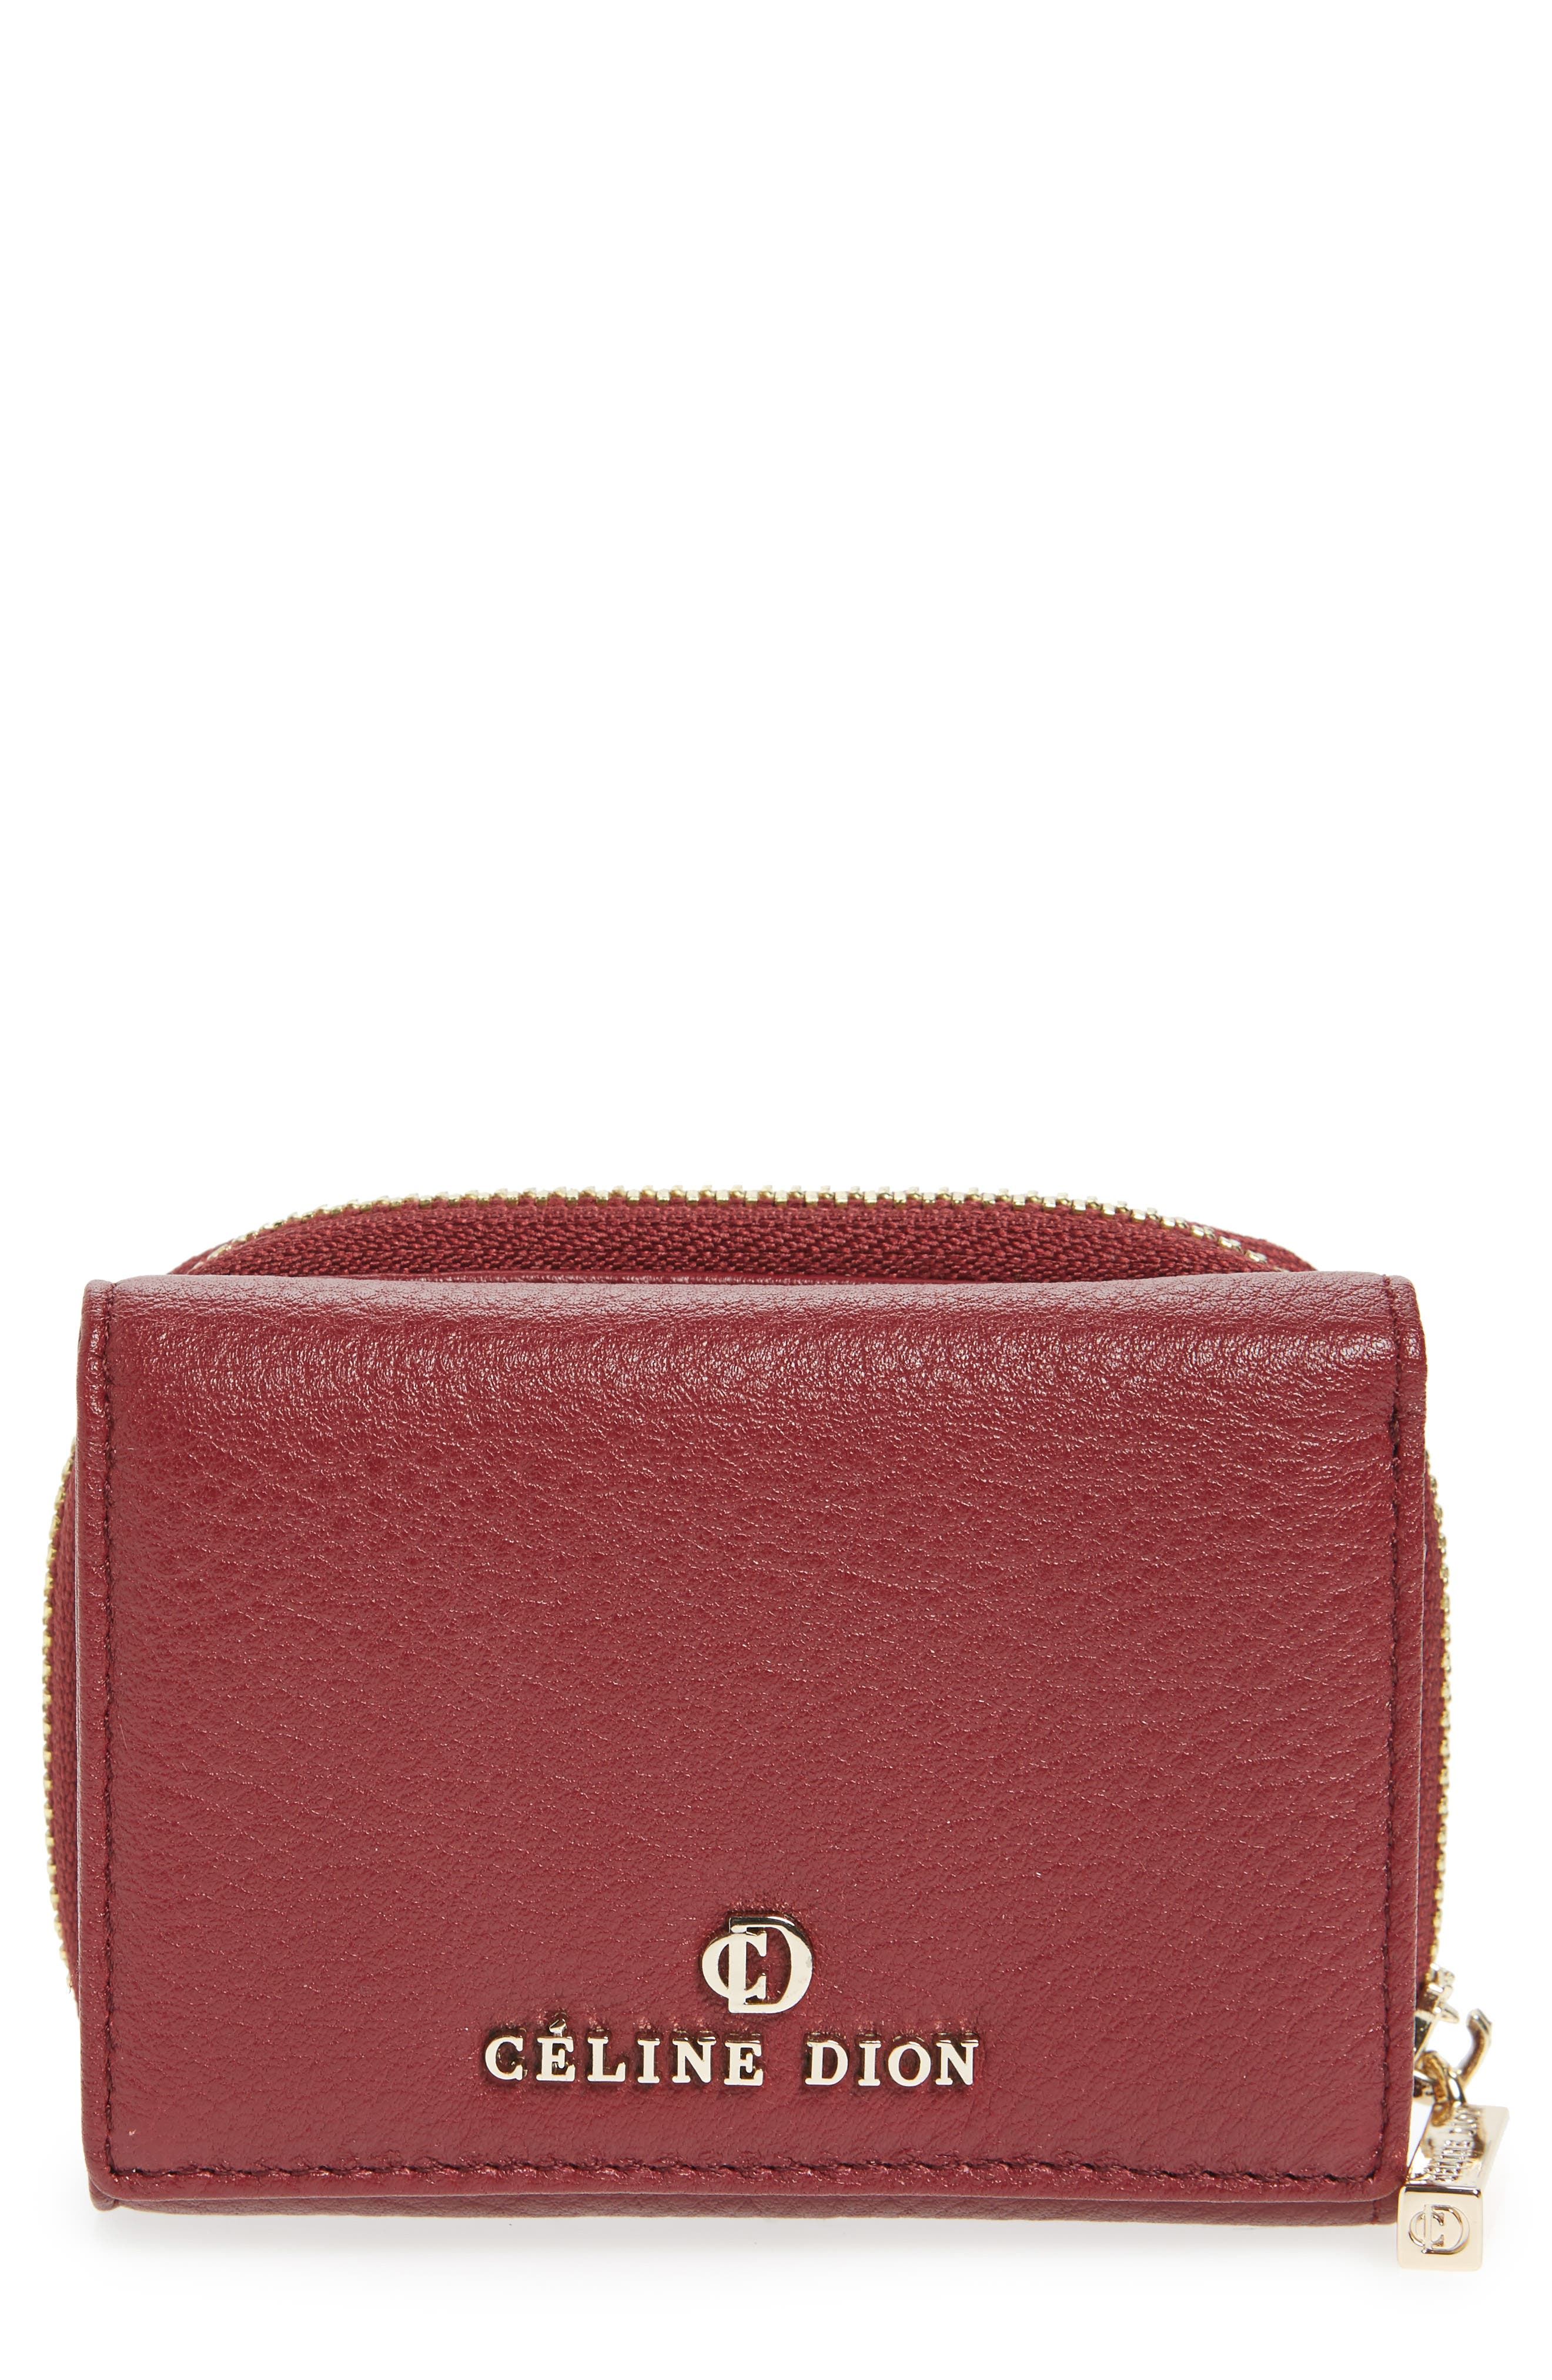 Céline Dion Small Adagio Leather Wallet,                             Main thumbnail 4, color,